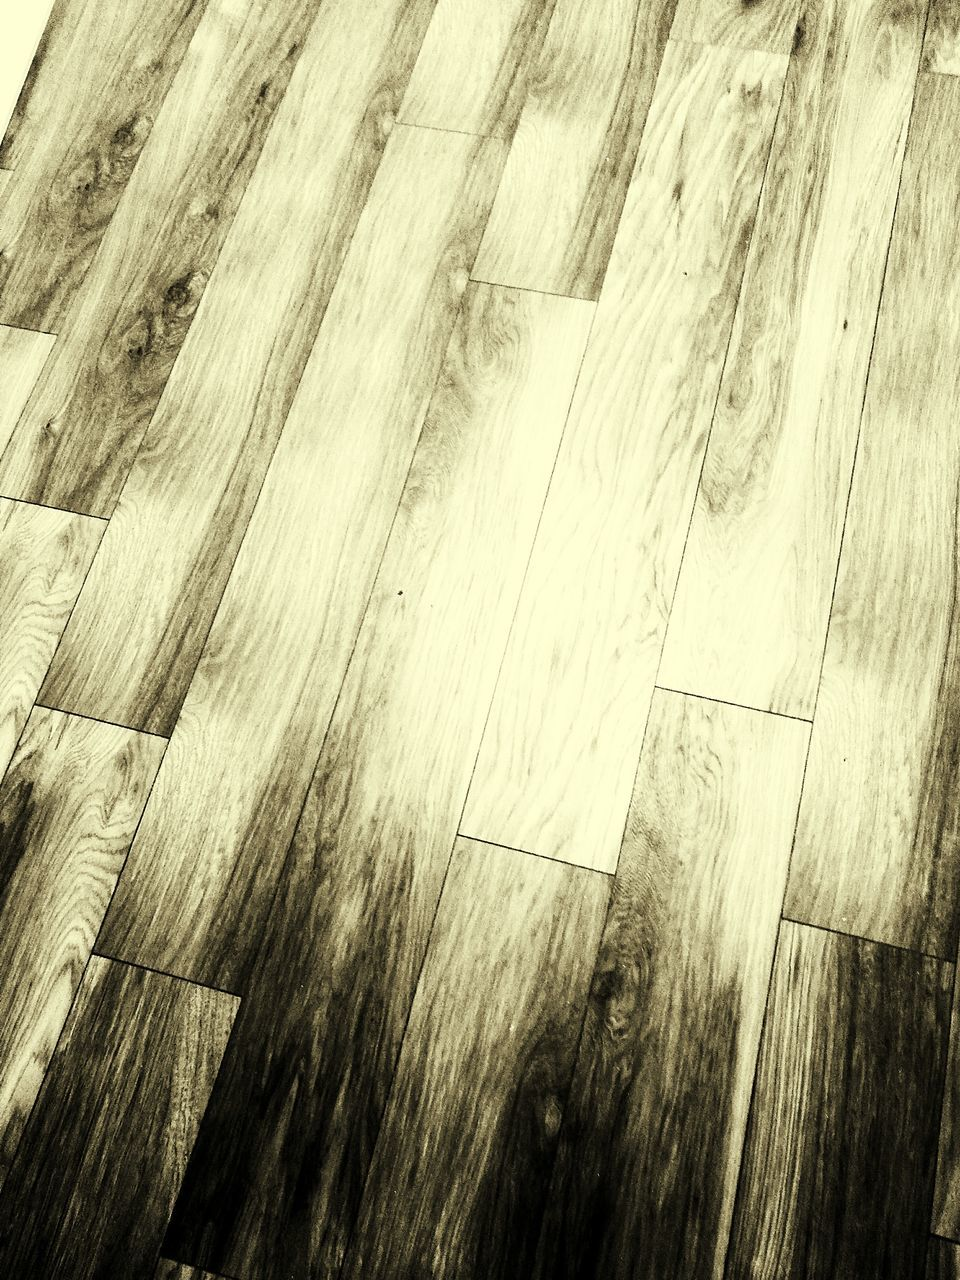 hardwood floor, wood - material, flooring, backgrounds, full frame, indoors, pattern, textured, high angle view, hardwood, no people, abstract, wood grain, close-up, wood paneling, knotted wood, architecture, day, nature